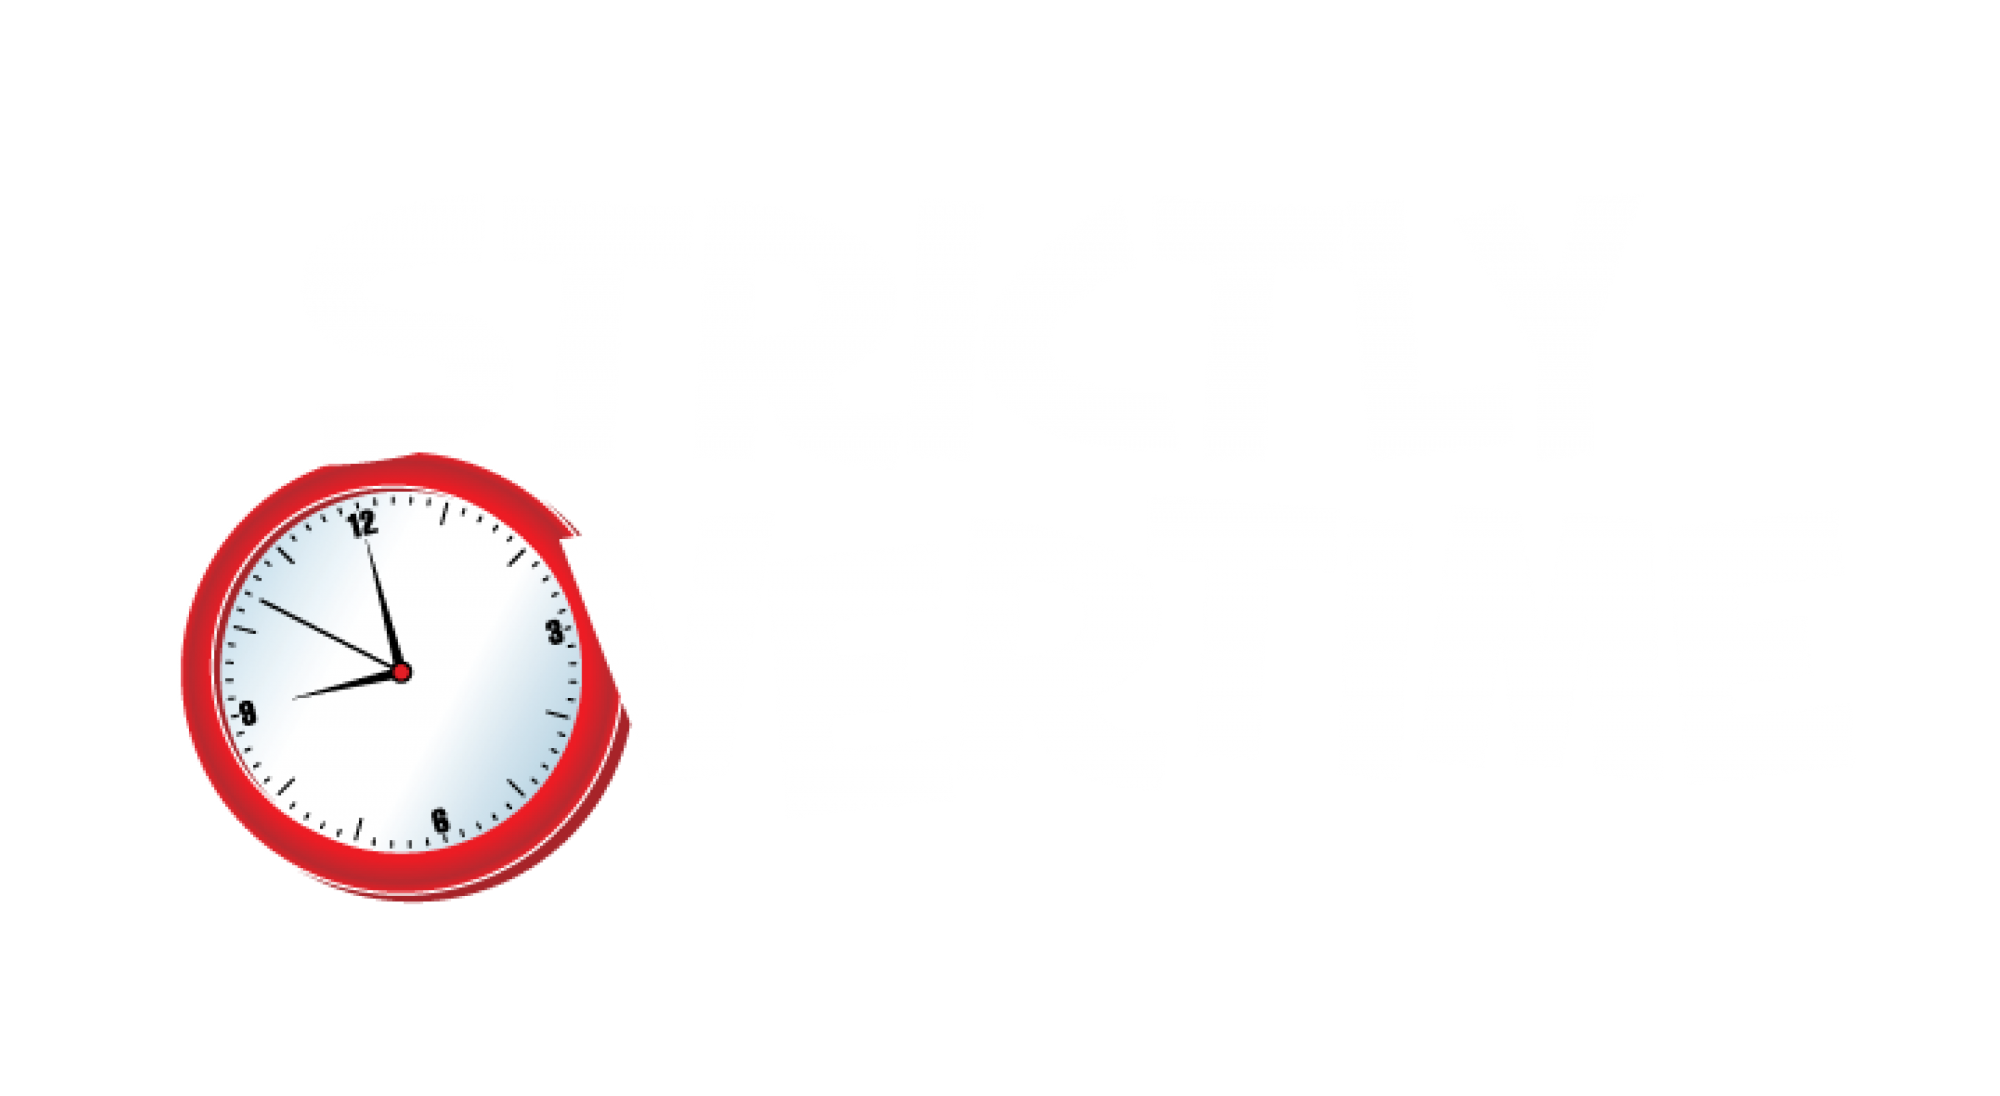 Strictly_overtime_design_BIG REVERSED_new_Rev-01-01-01